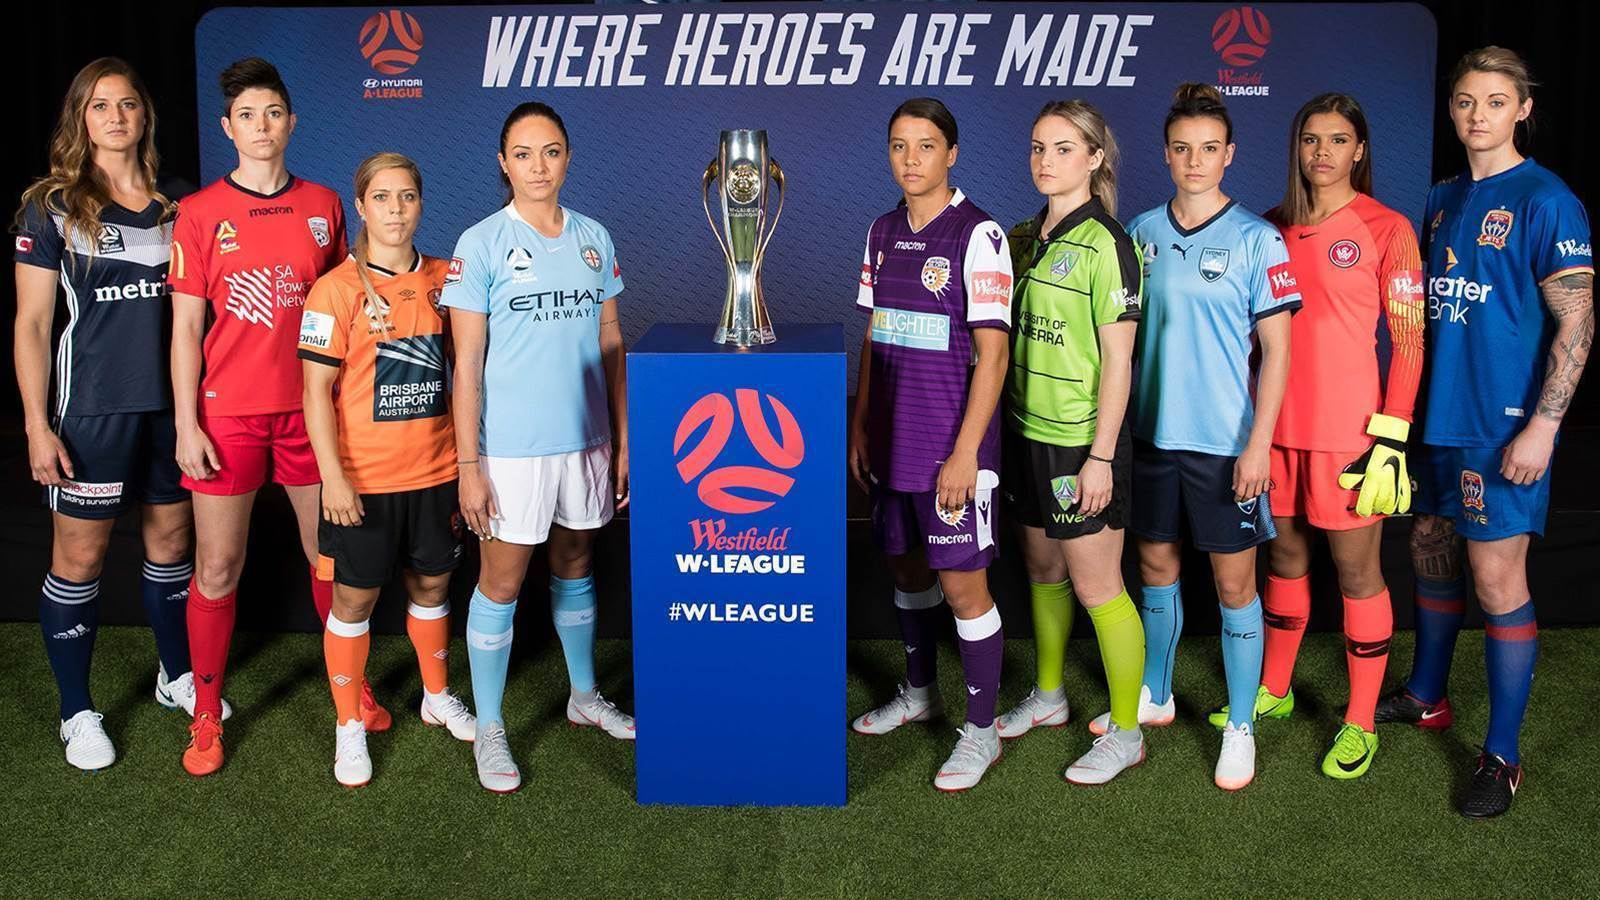 FFA's plans for the W-League